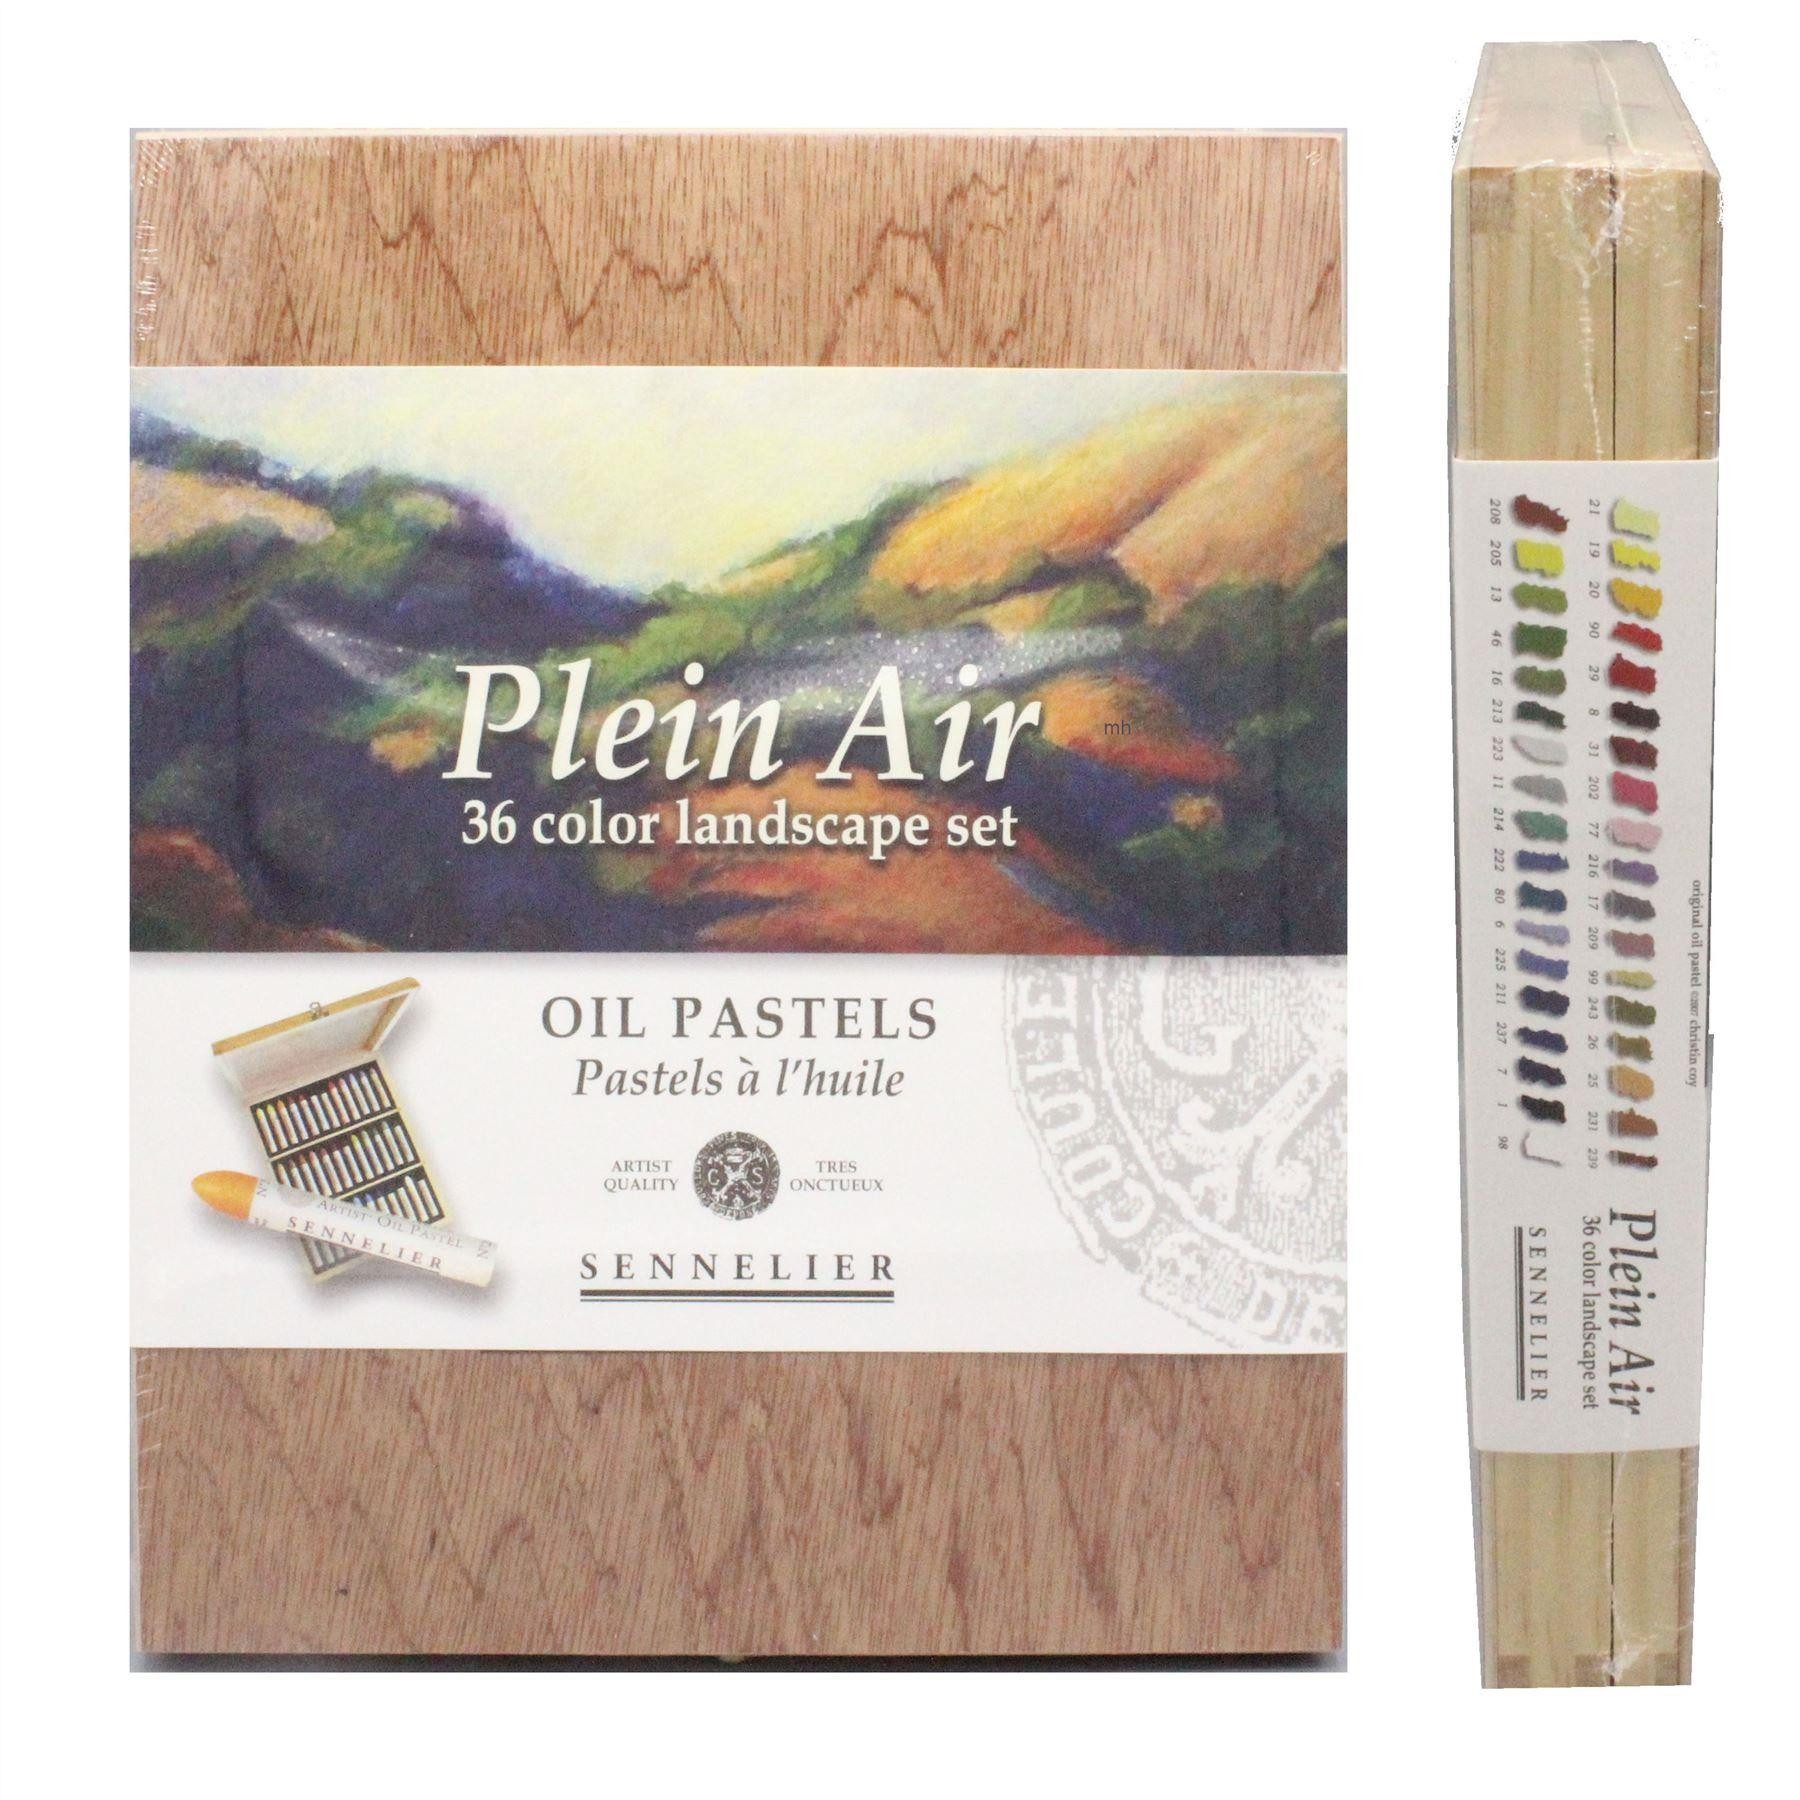 Sennelier Artists Quality Plein Air 36 Colour Landscape